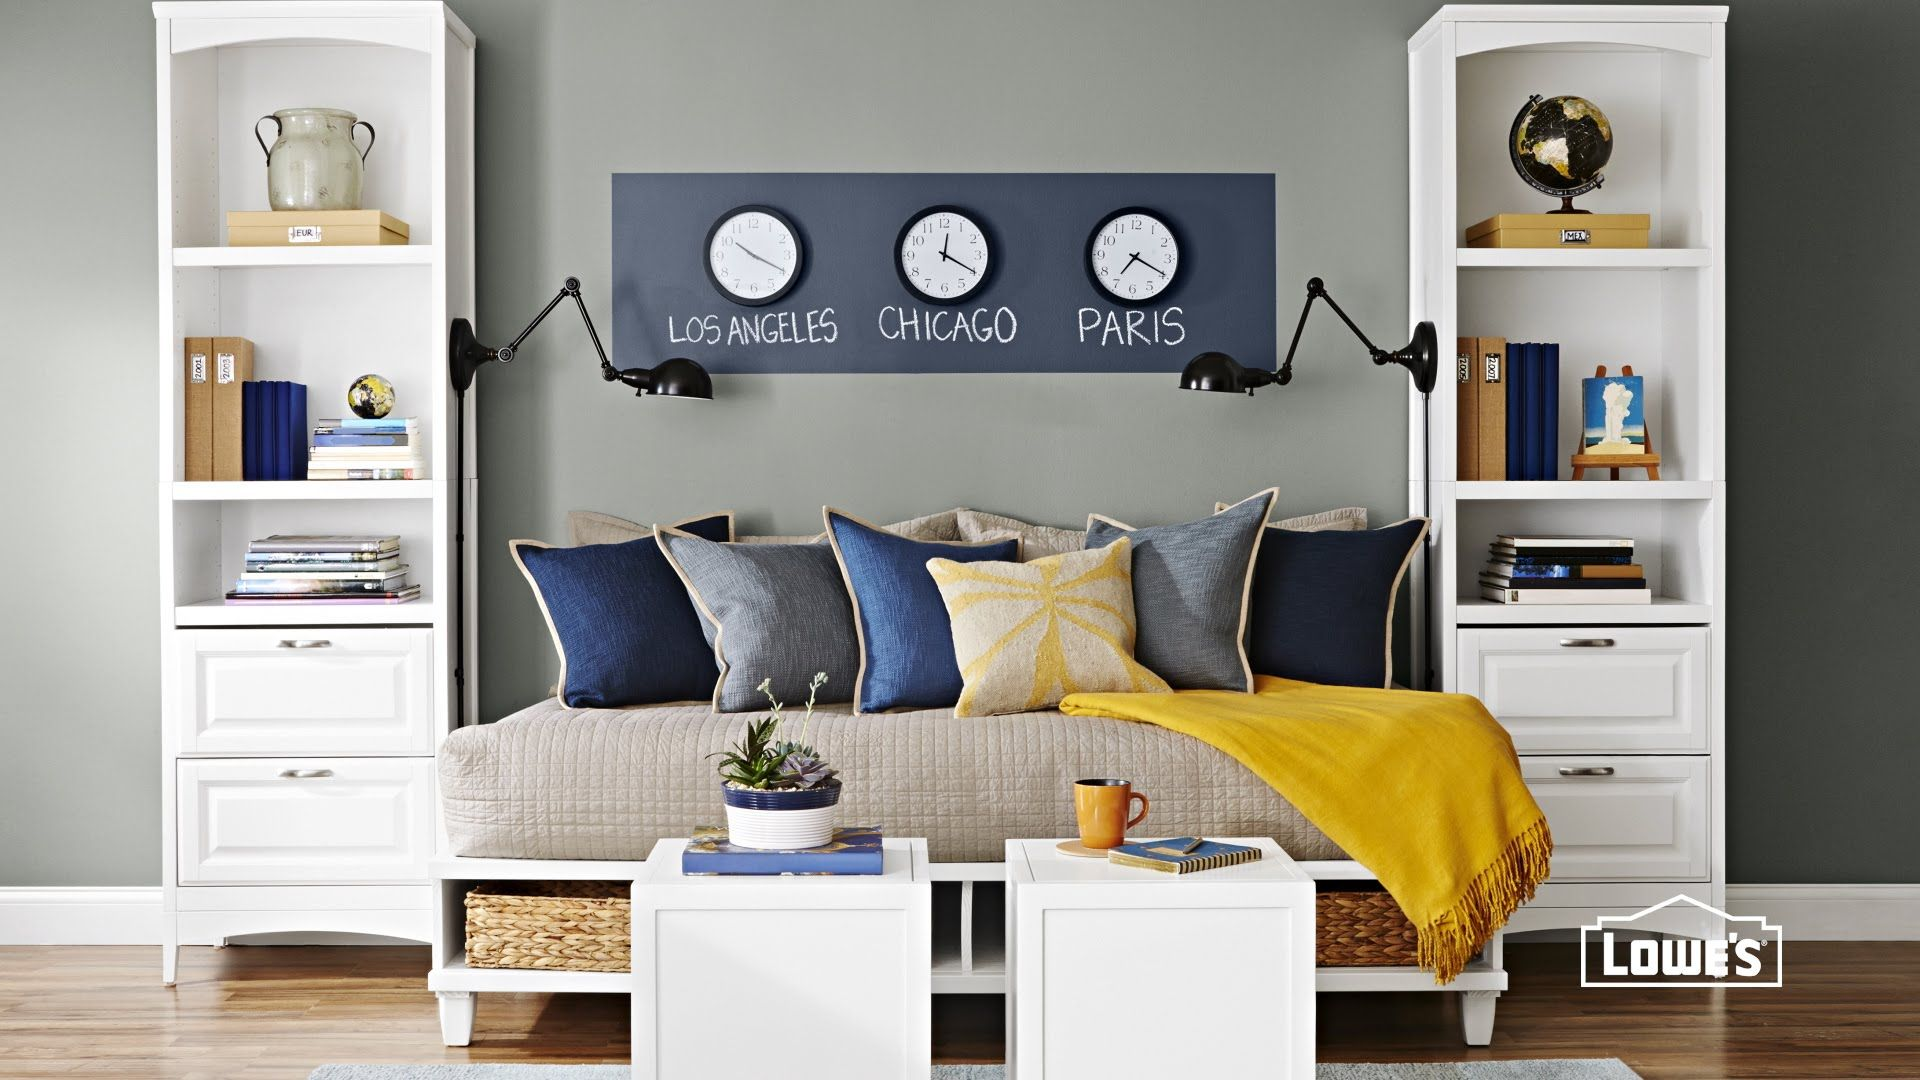 5 Ideas For Decorating A Guest Room Small Guest Bedroom Guest Bedroom Office Small Guest Rooms